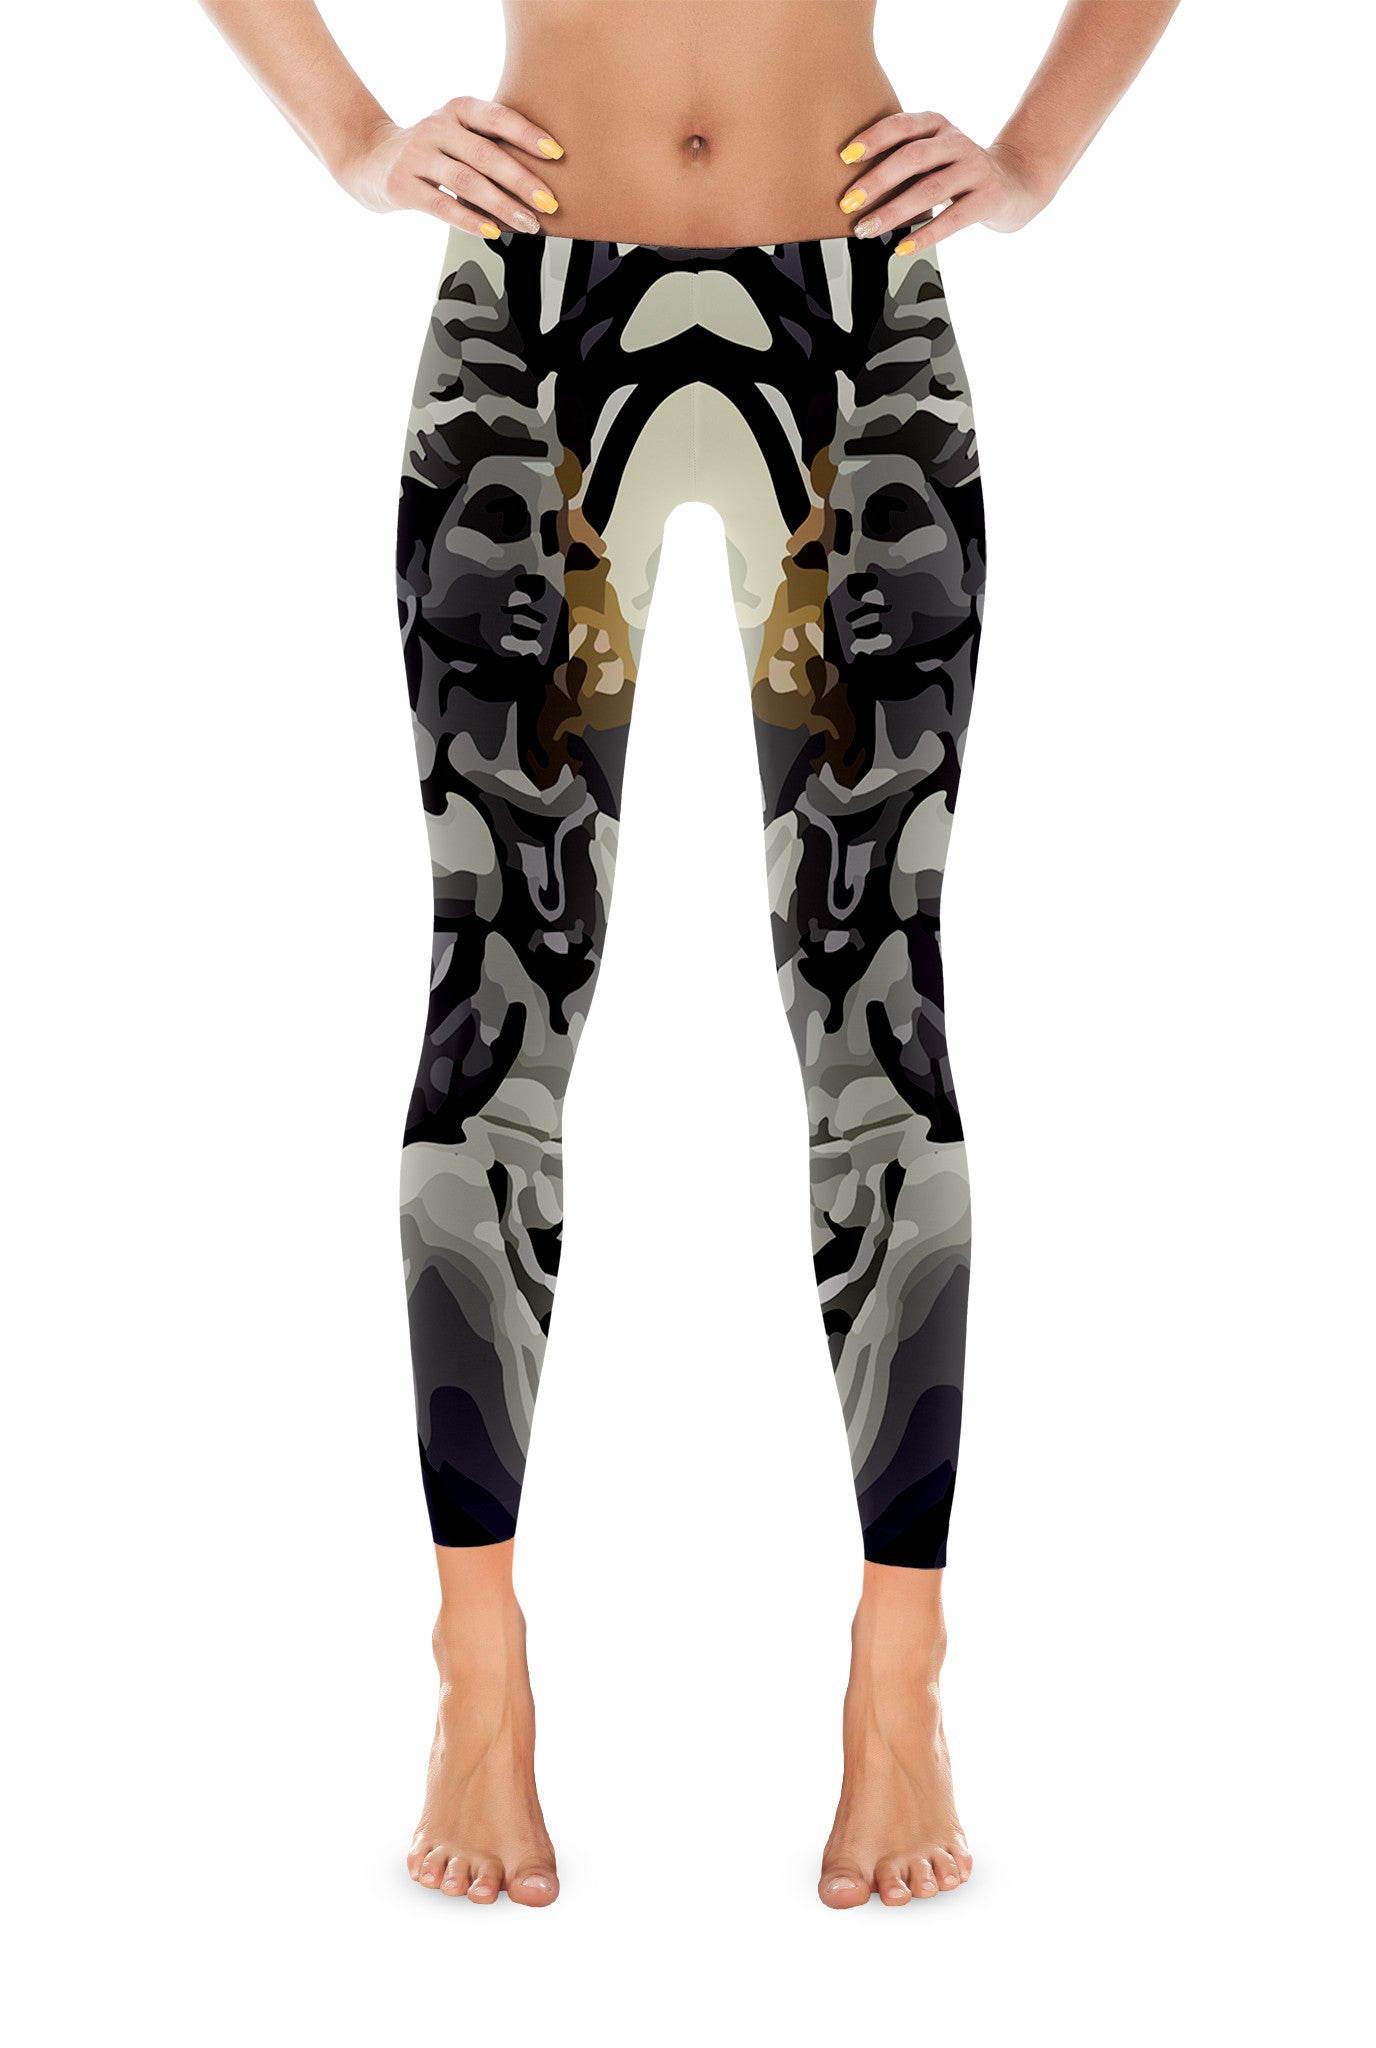 Shiva Leggings Legging - Square Boy Clothing